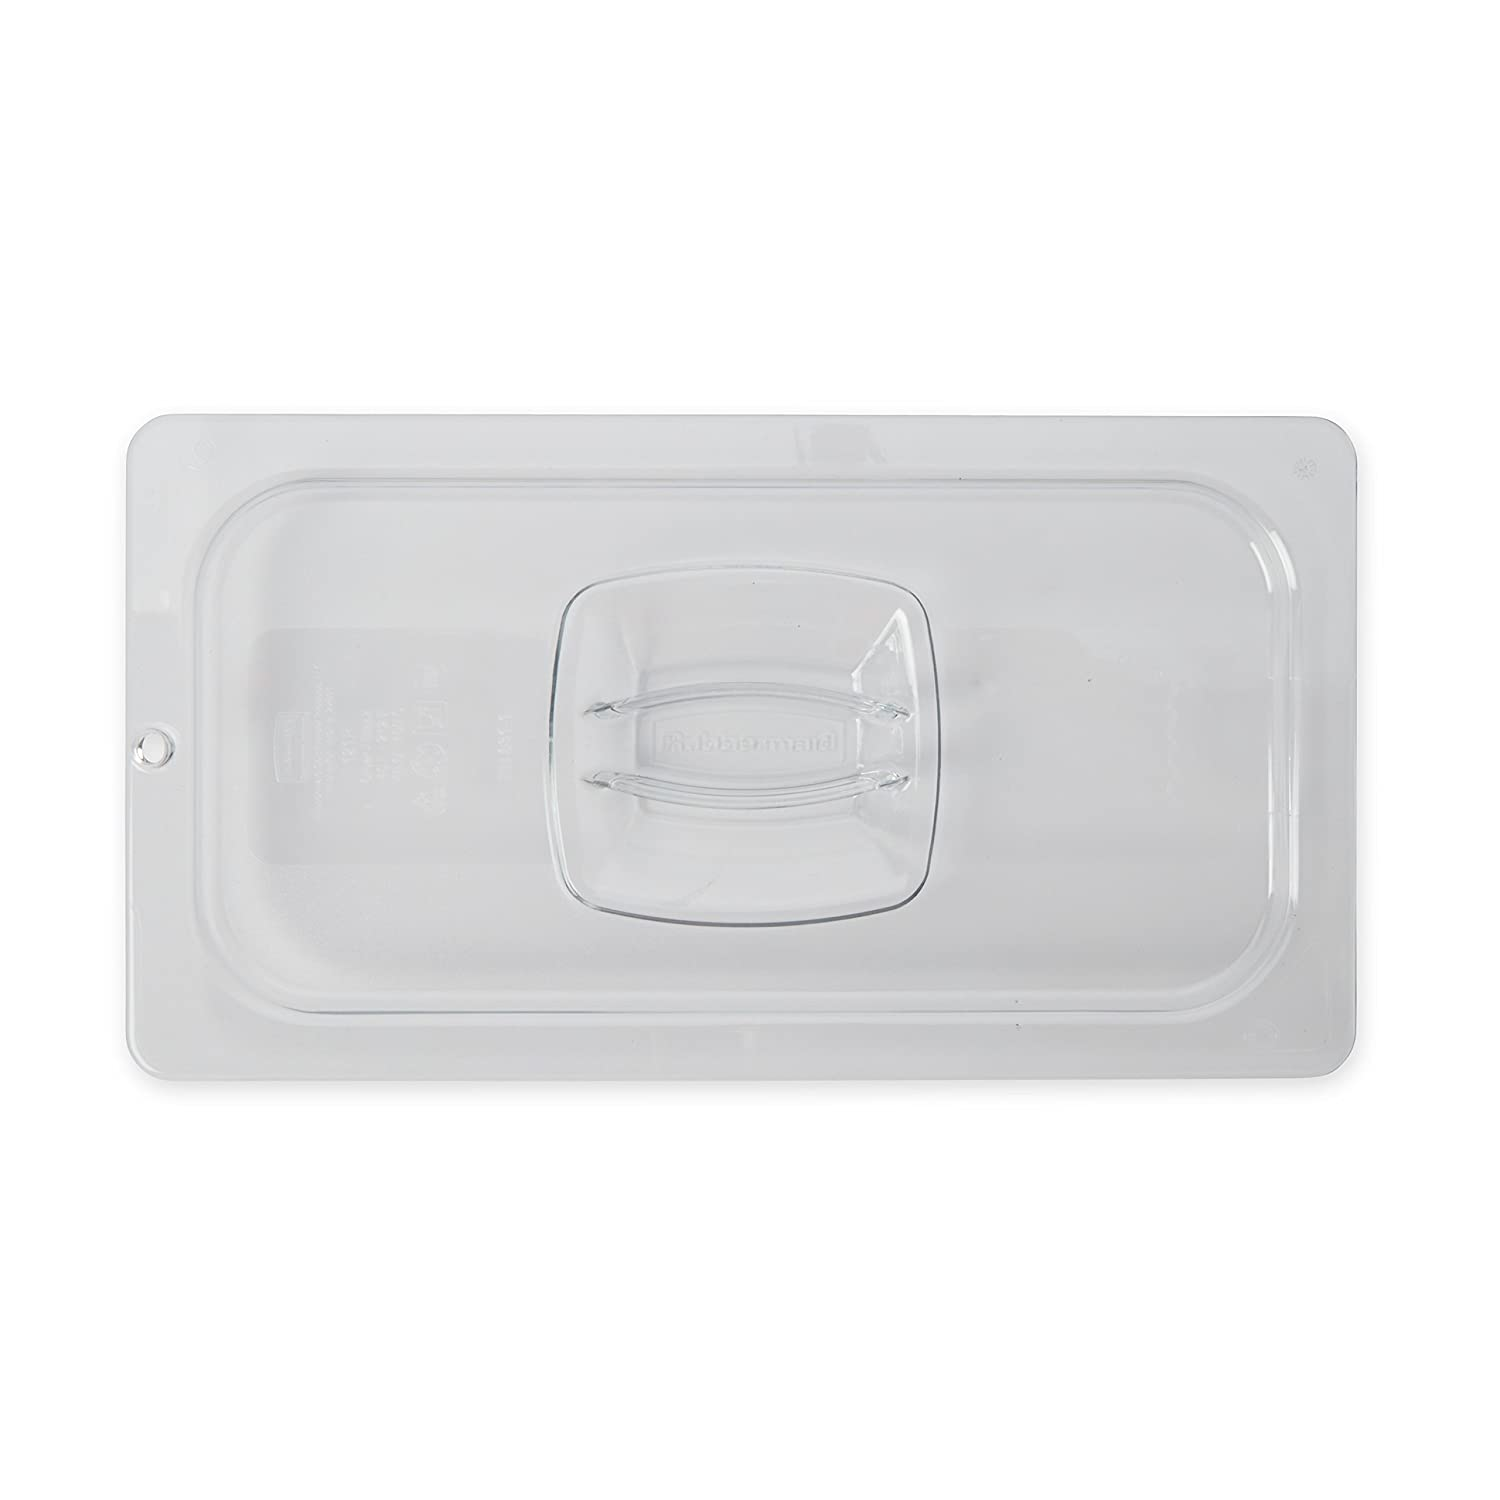 Rubbermaid Commercial Cold Food Pan Cover with Peg HoleCLR 1/3 Size (FG121P23CLR)